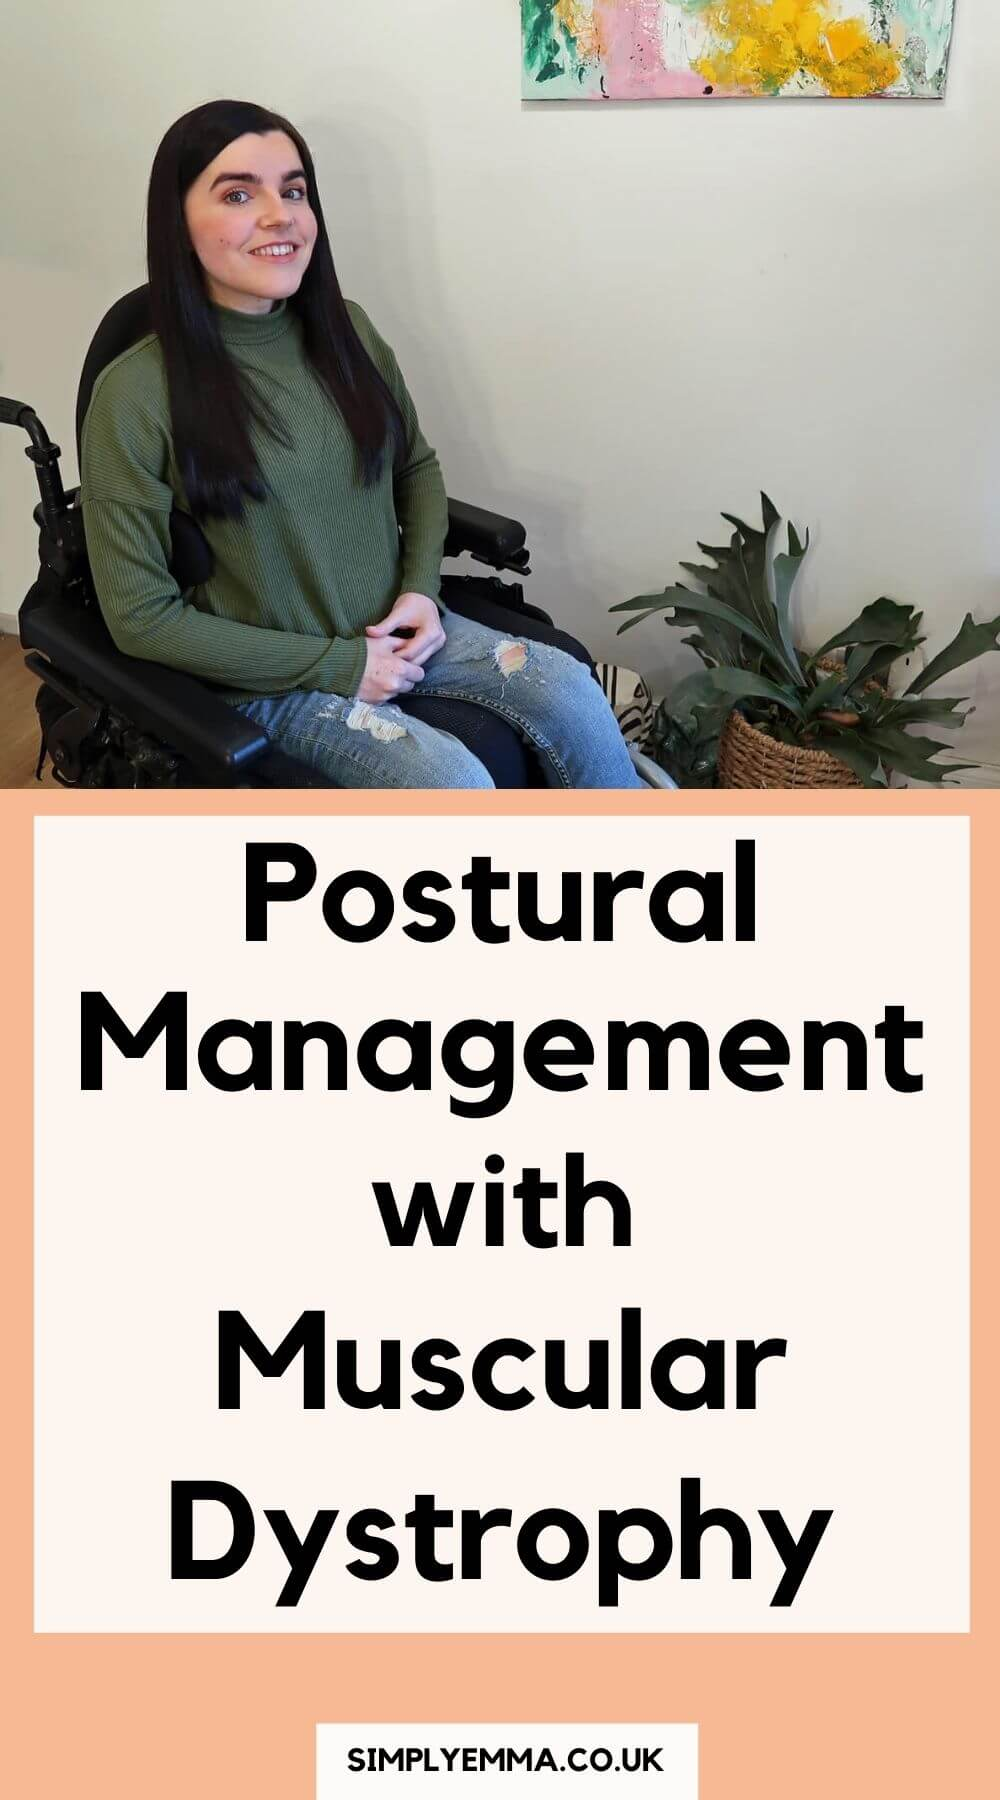 Postural Management Ways to Manage Posture with Muscular Dystrophy